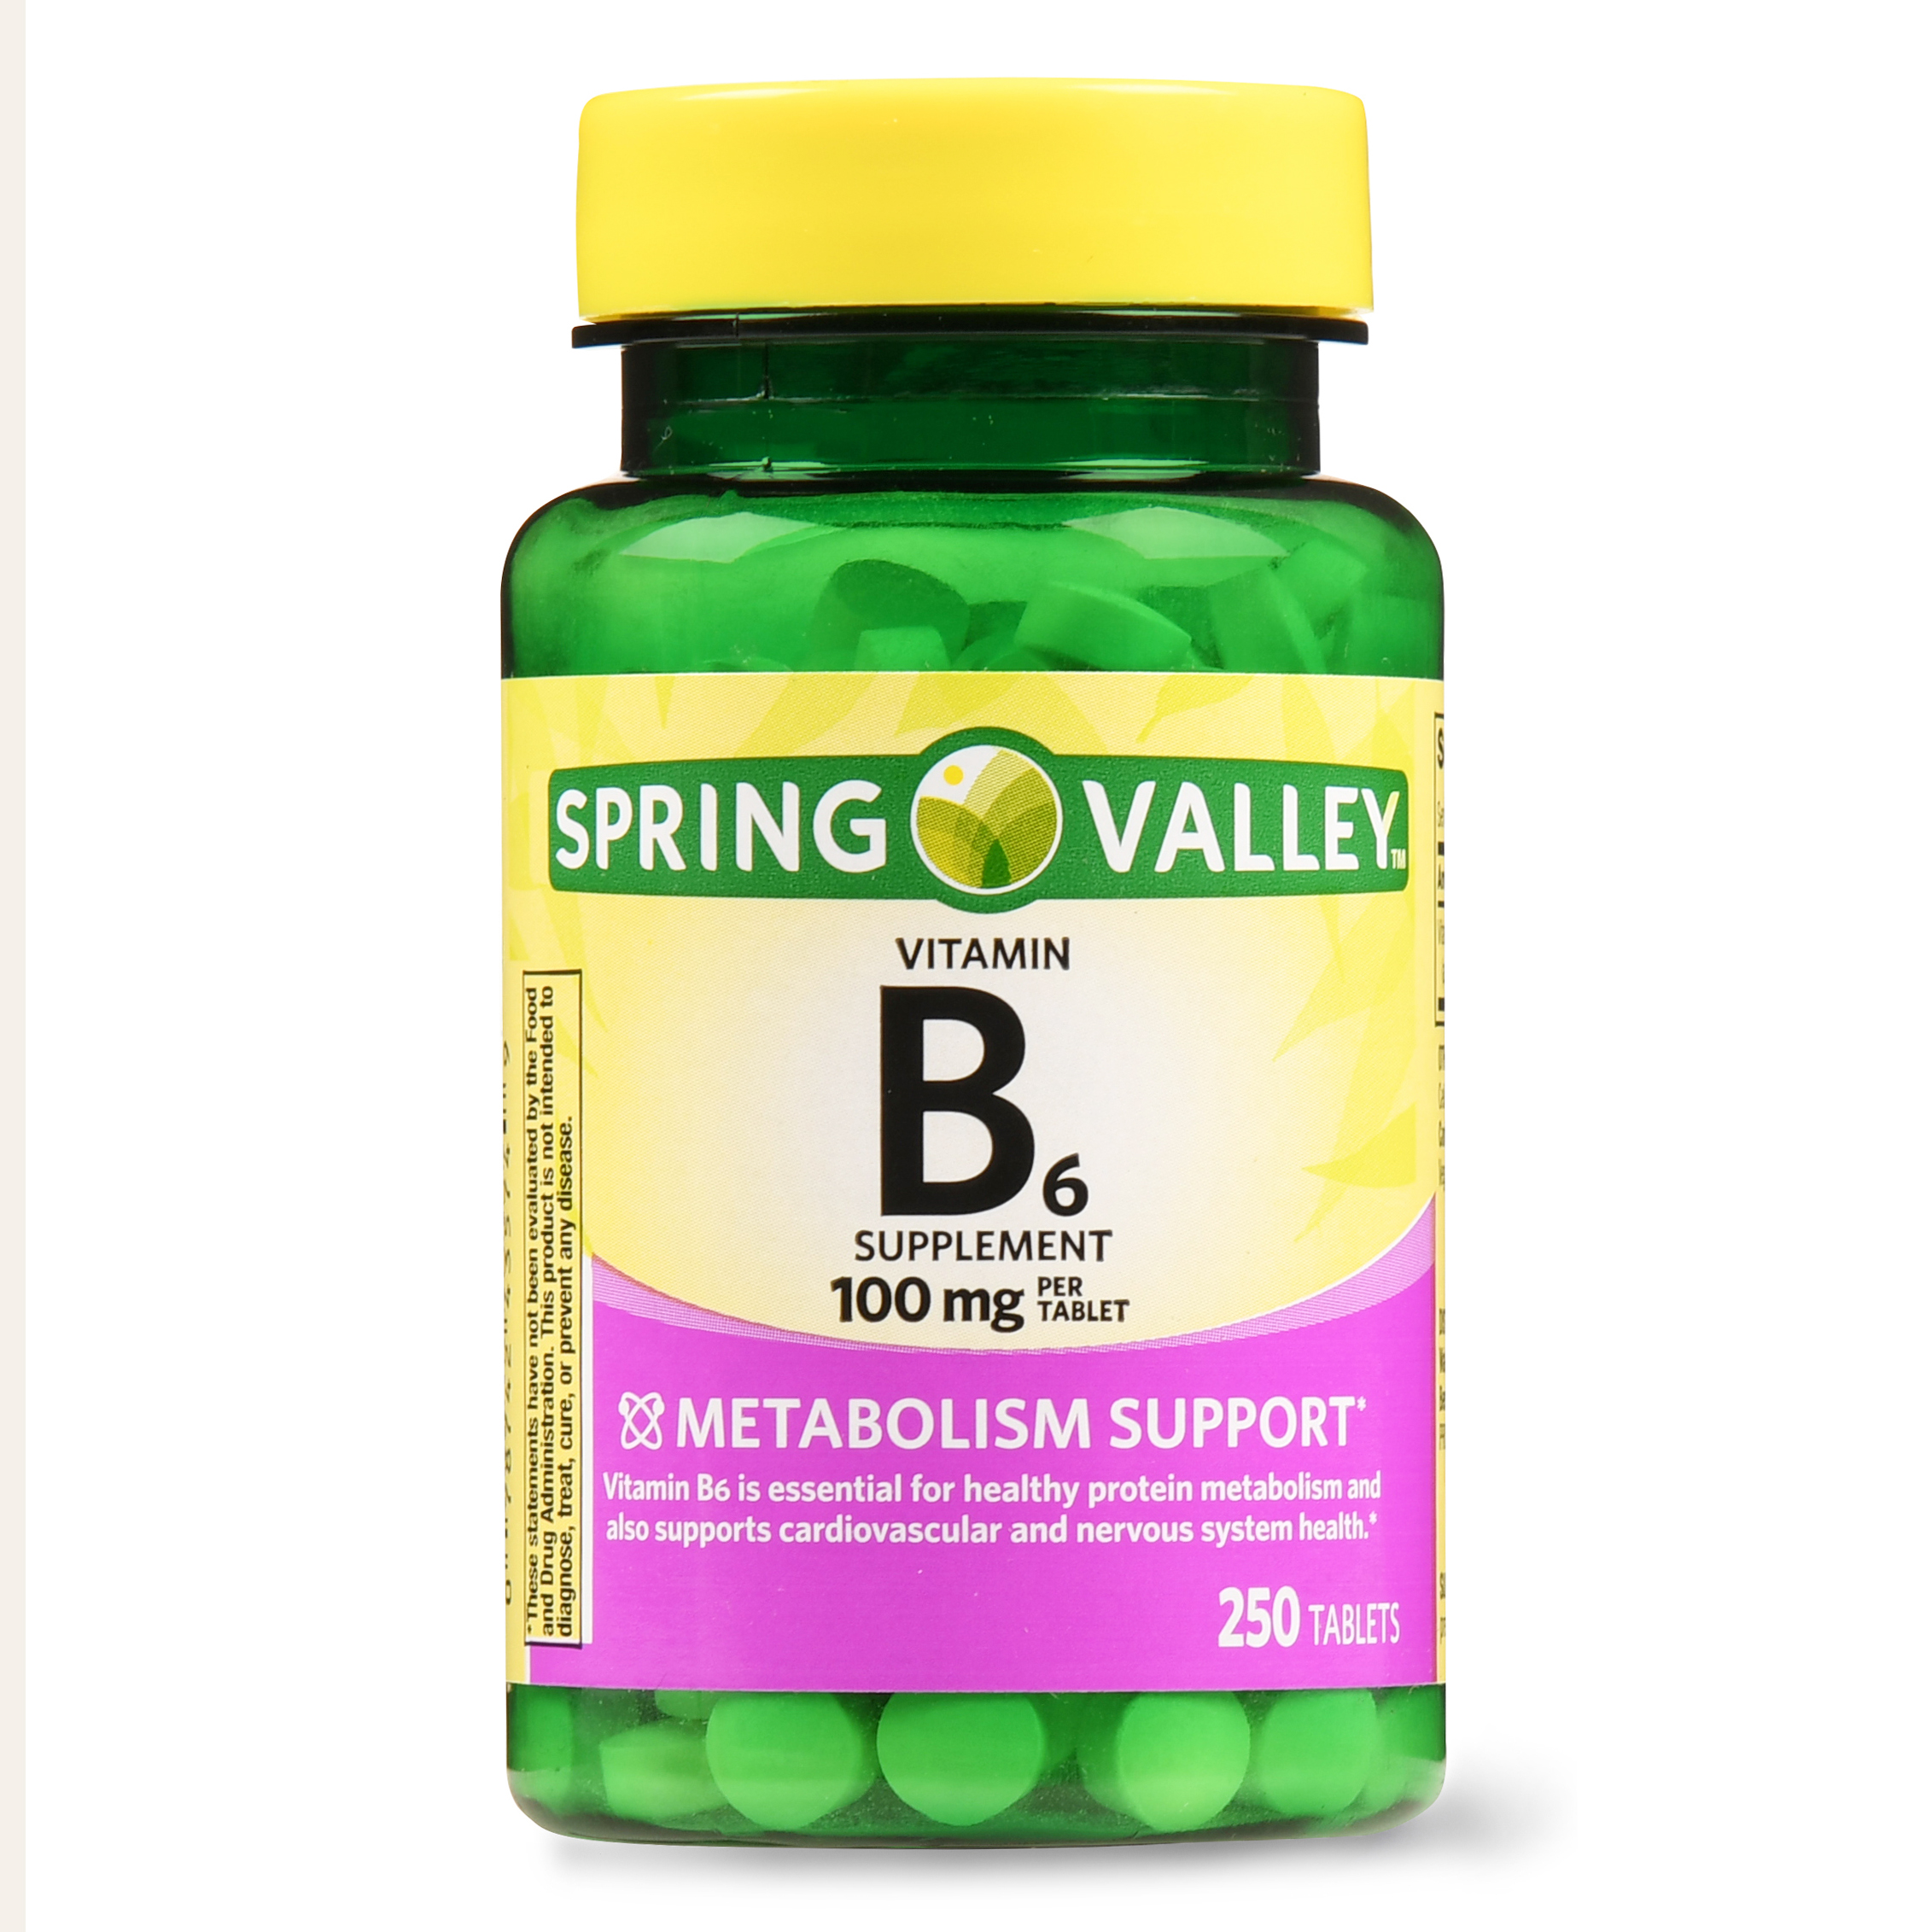 (2 Pack) Spring Valley Vitamin B6 Tablets, 100 mg, 250 Ct